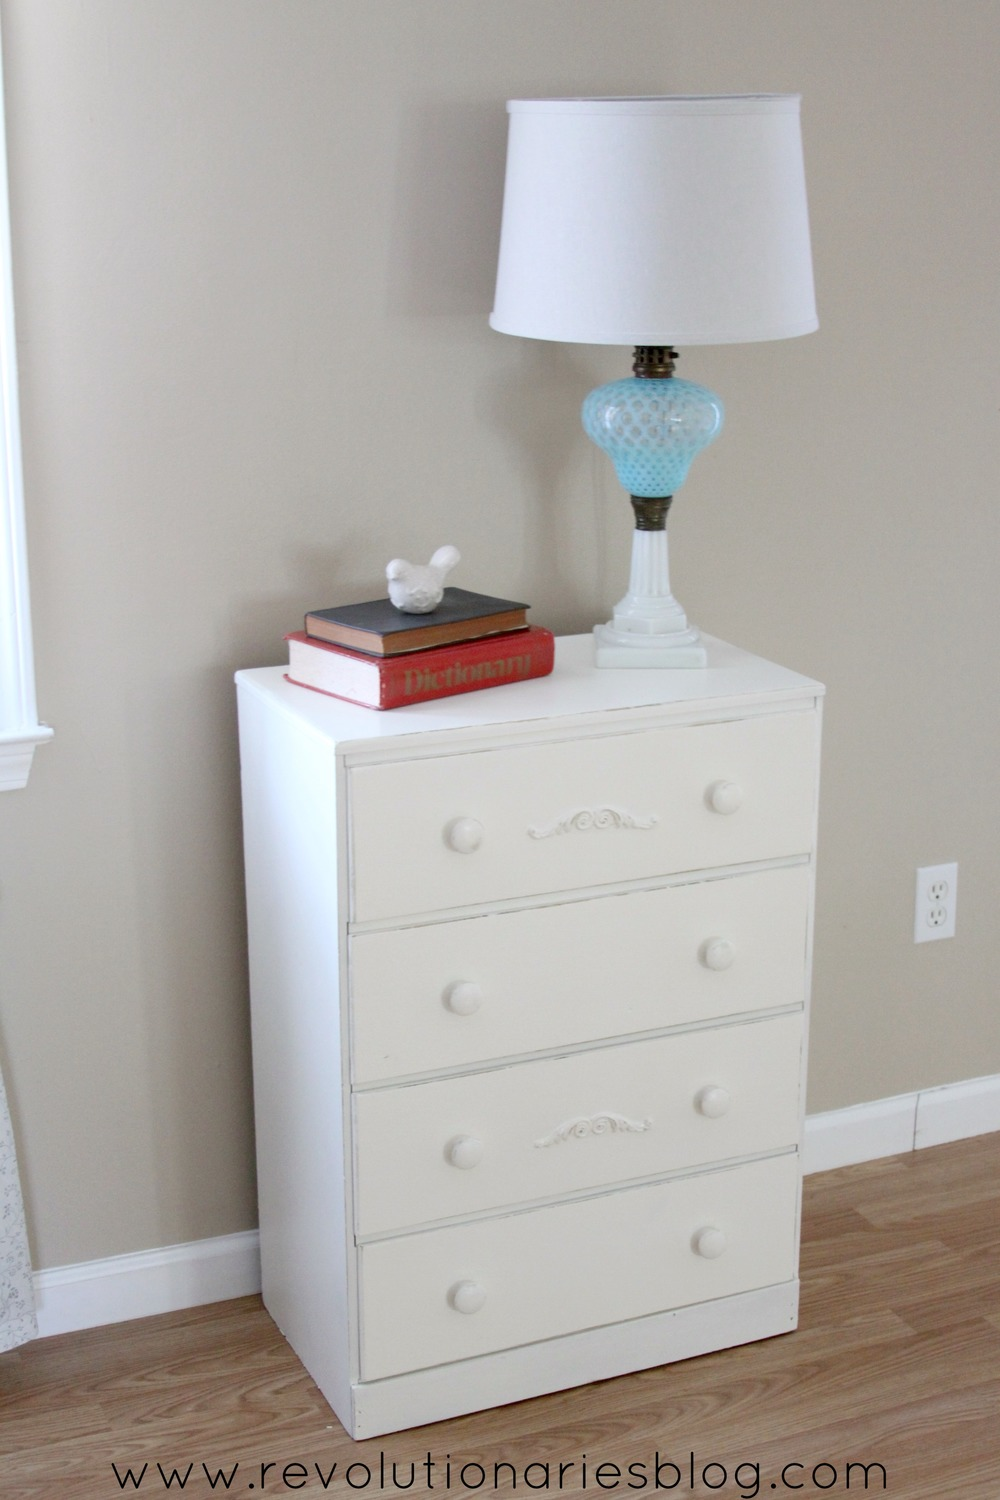 little-white-dresser-with-lamp.jpg